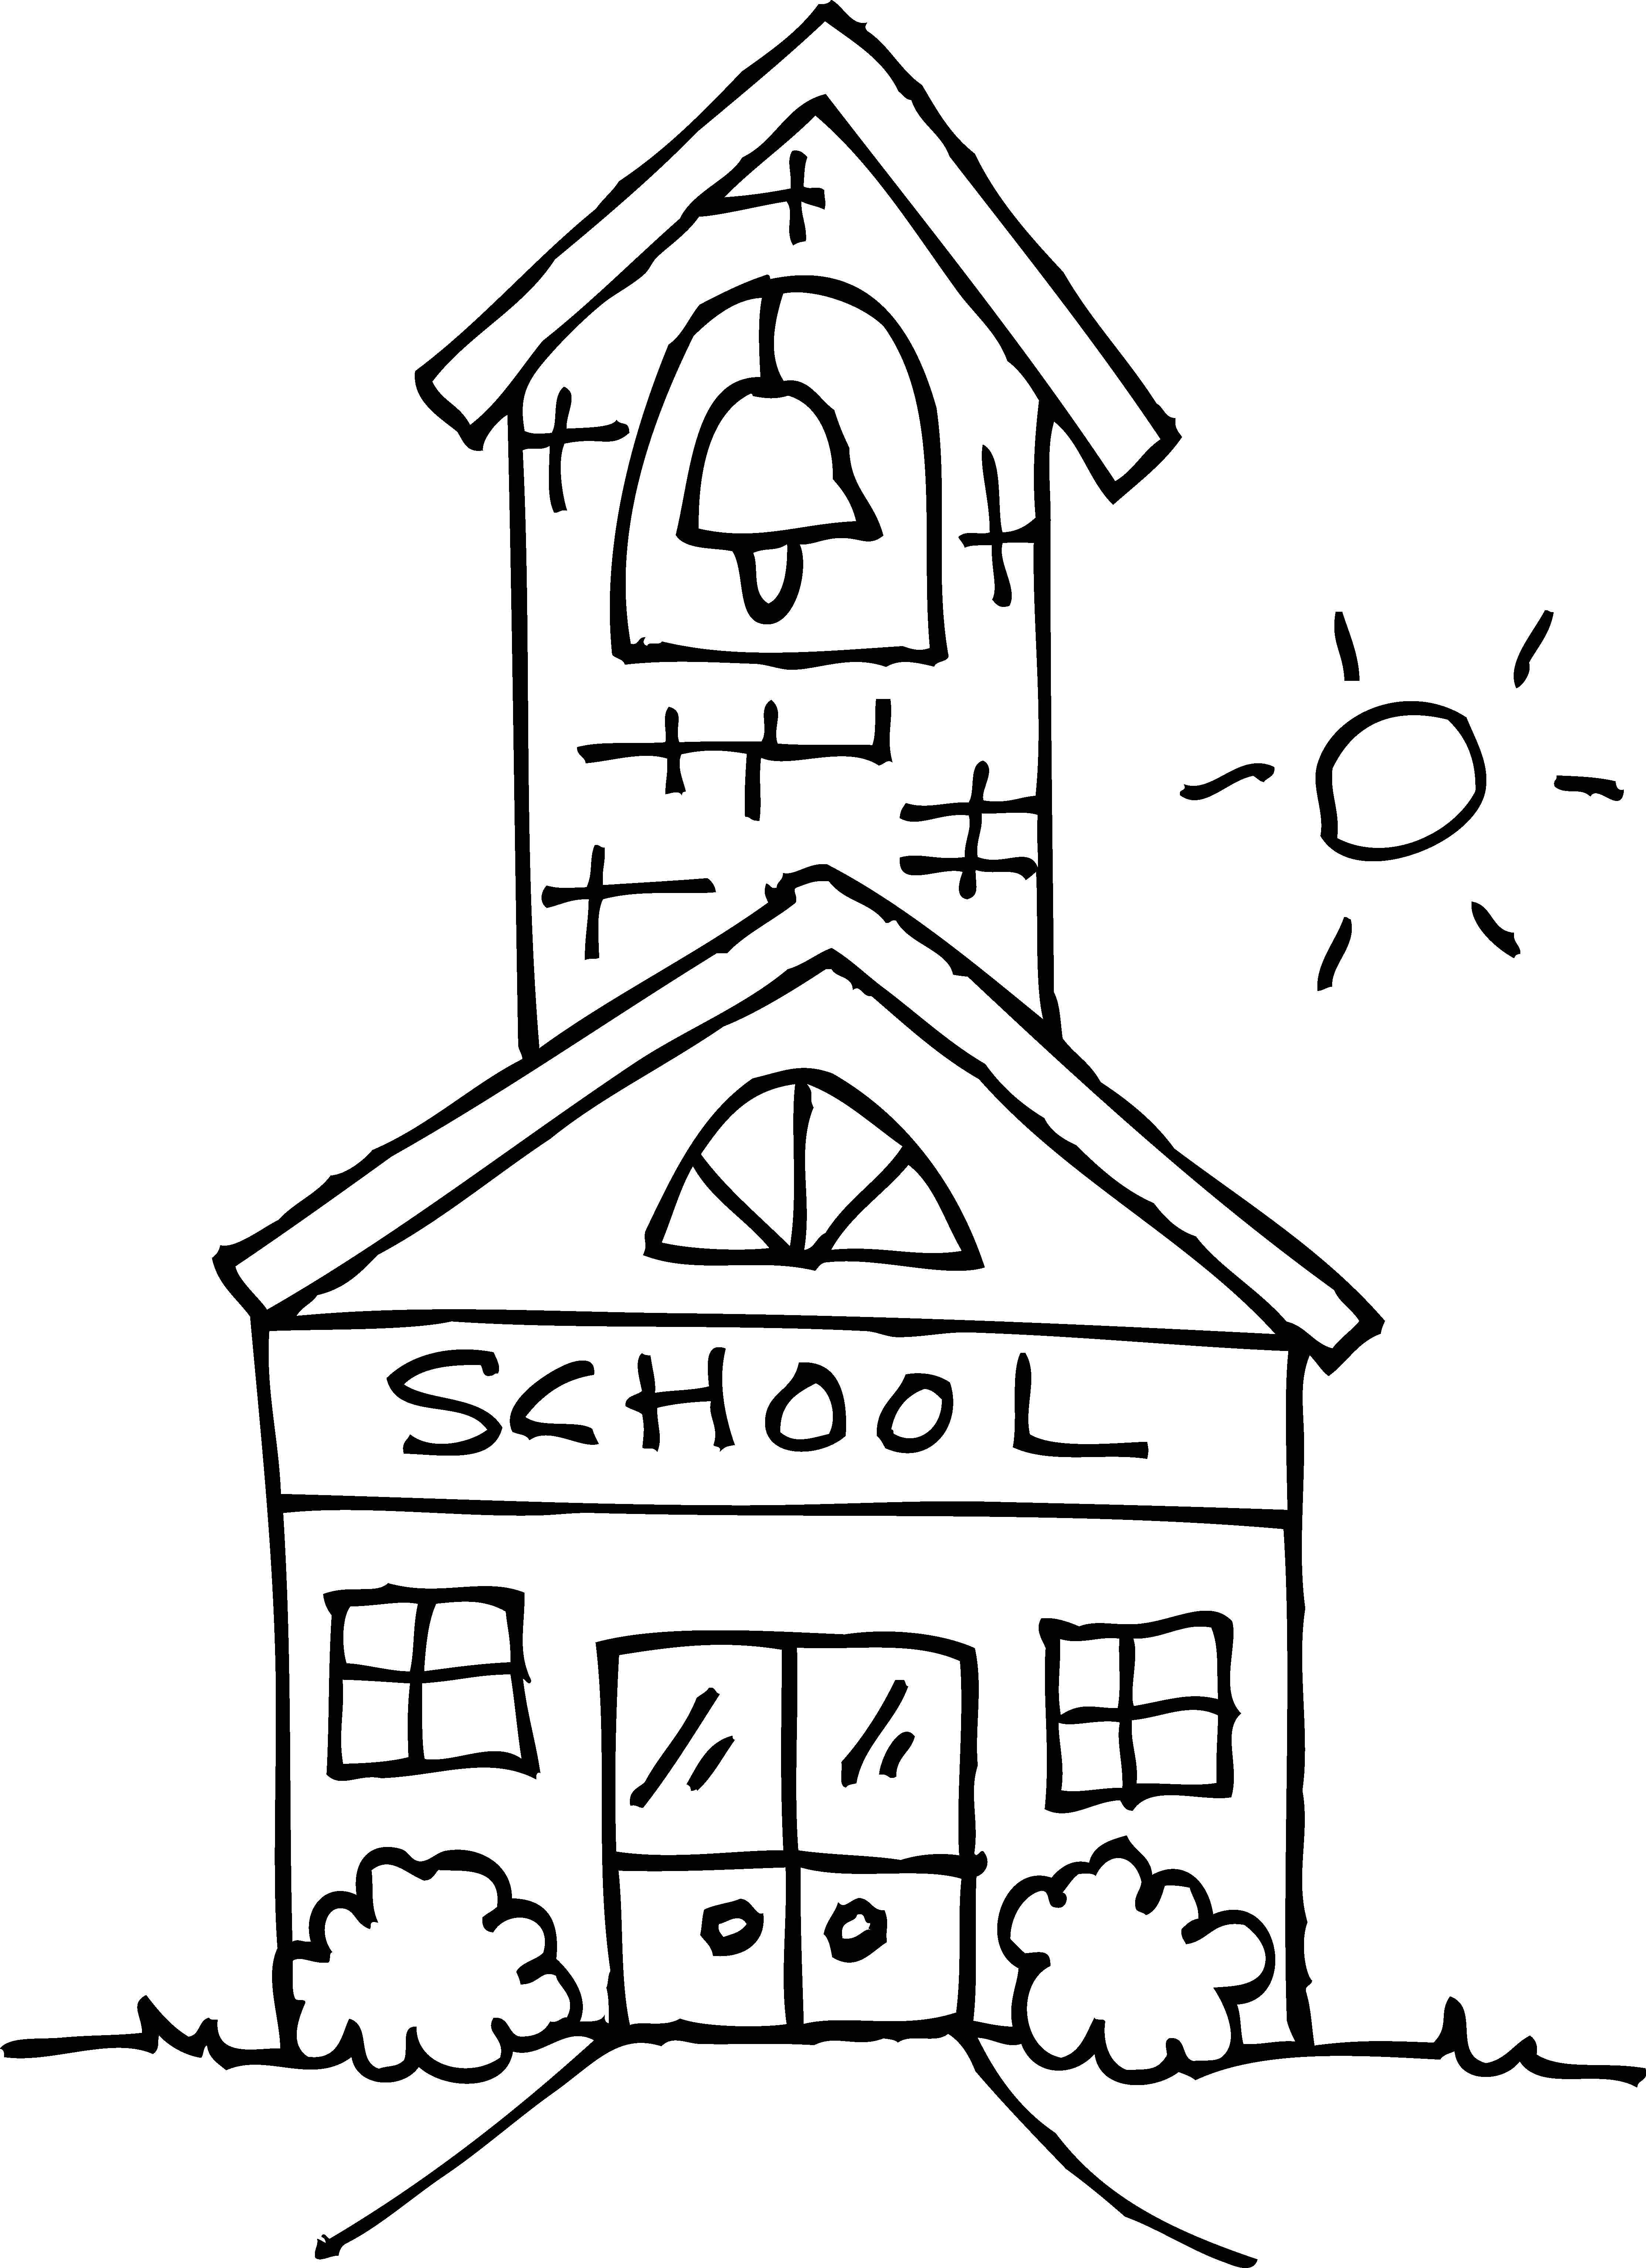 4453x6136 School Building Coloring Page Freecolorngpages.co